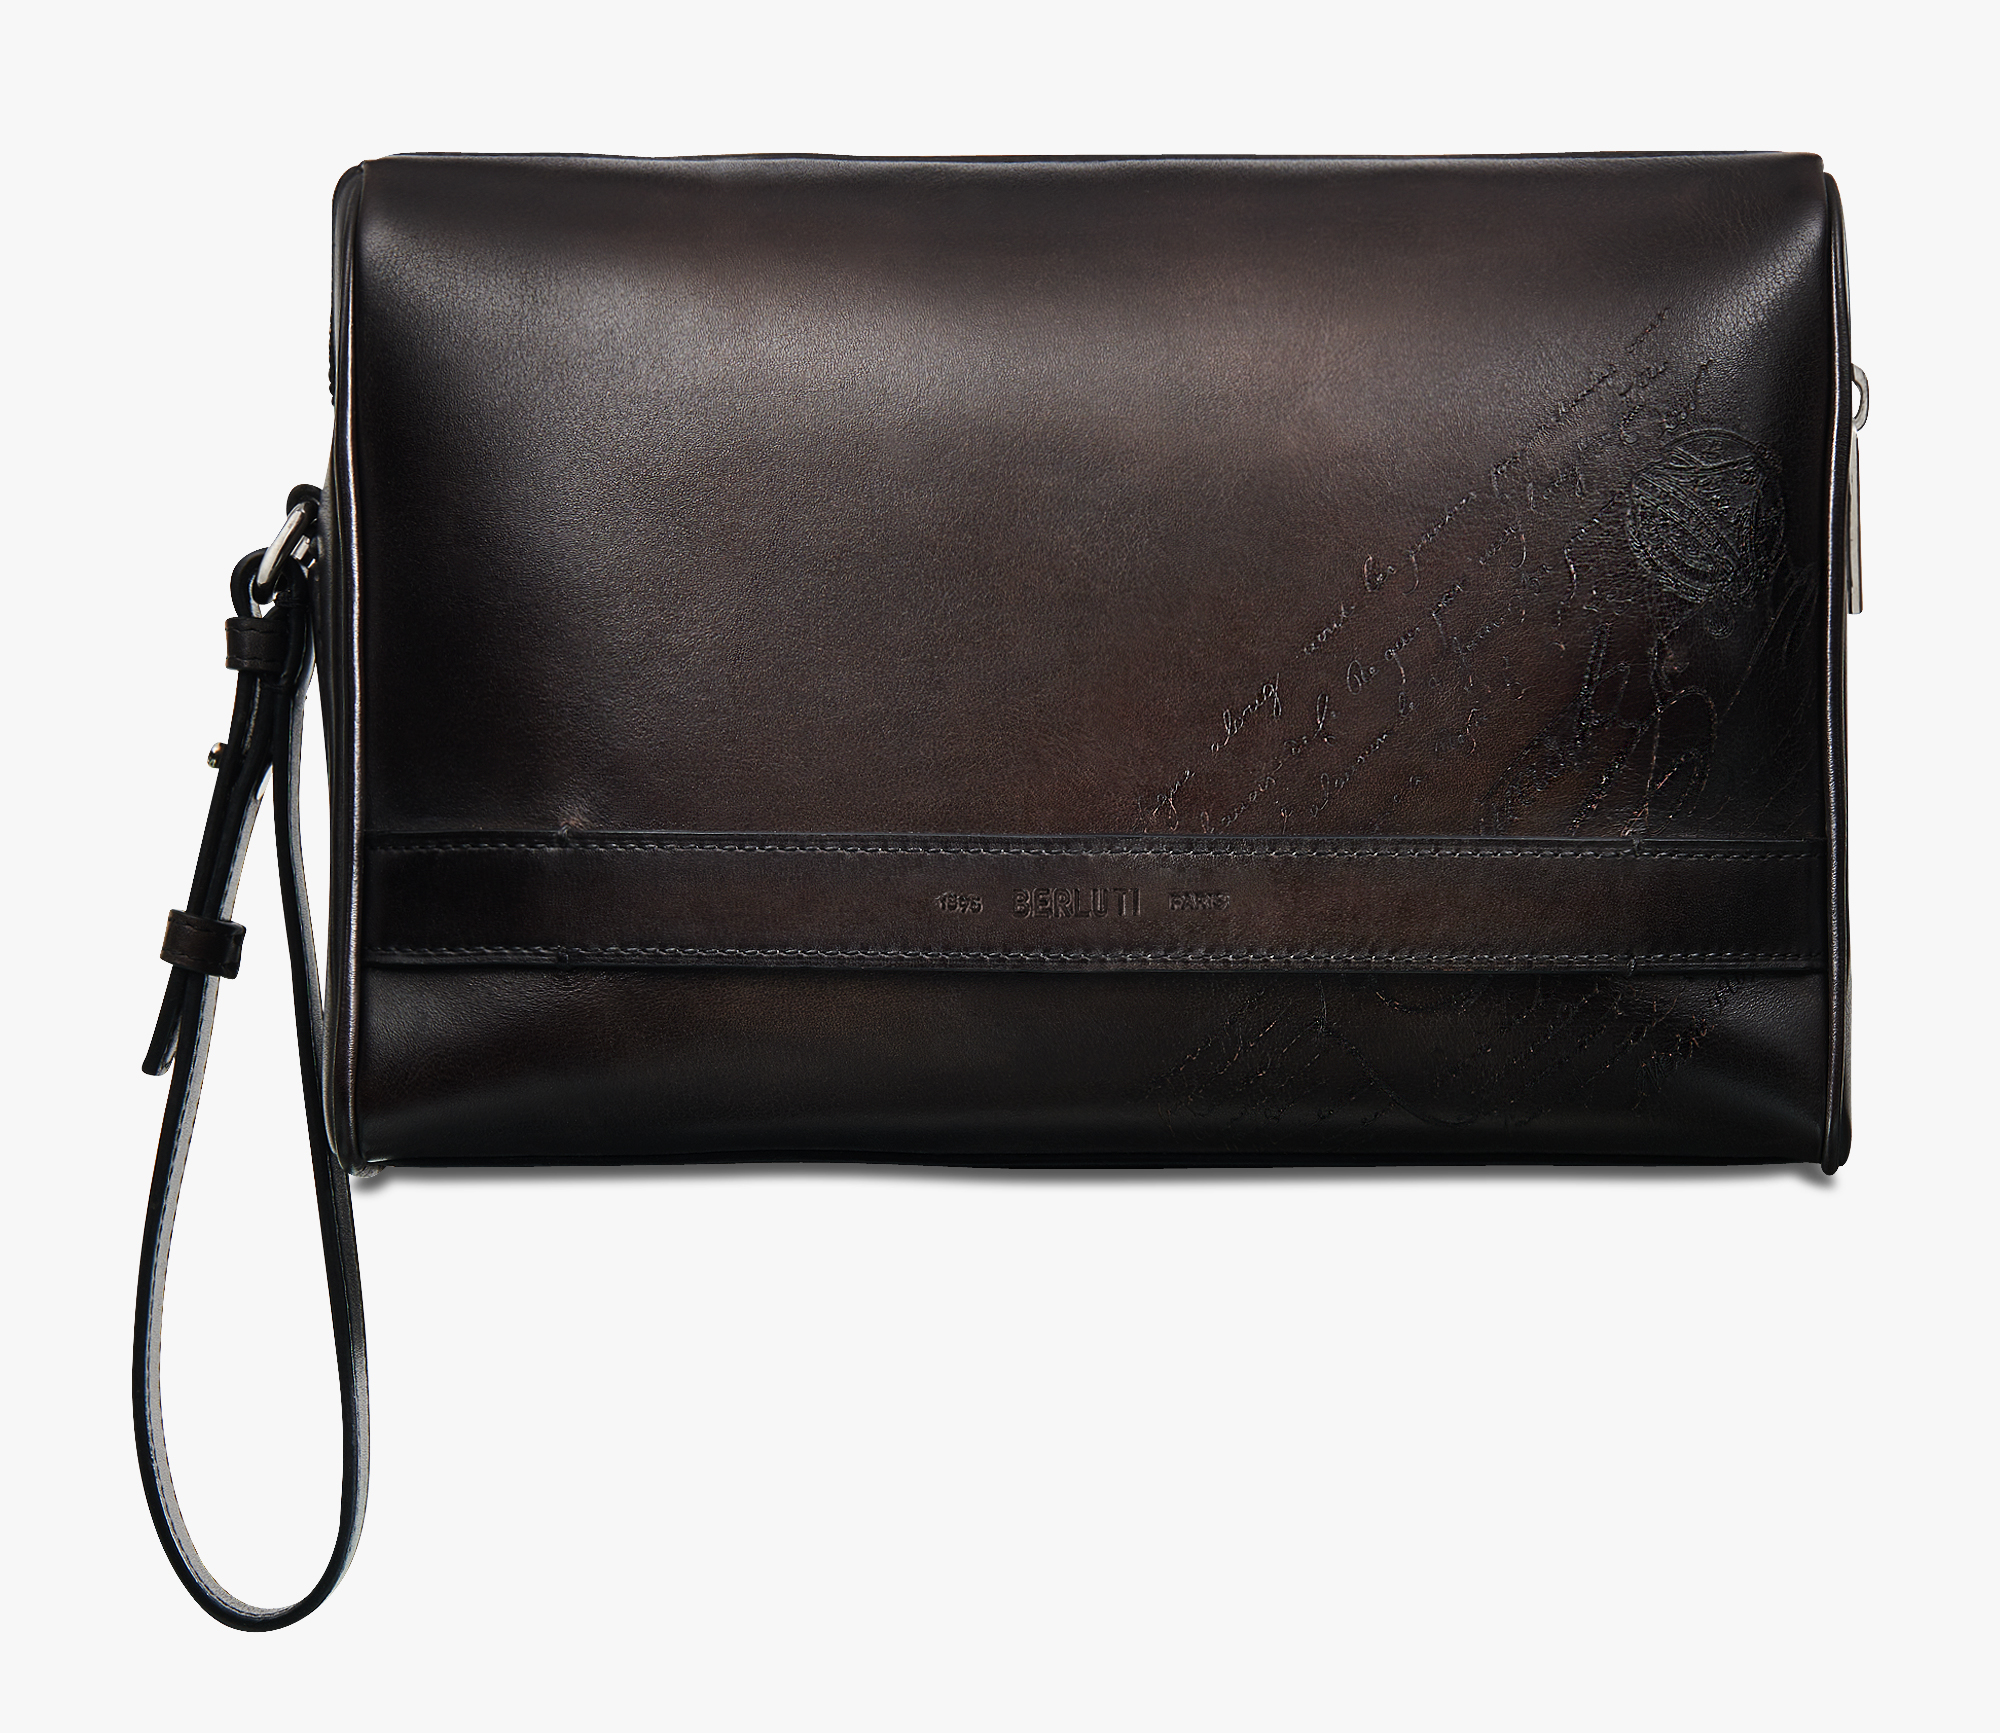 Rosewood Scritto Swipe Leather Pouch, ICE BLACK, hi-res